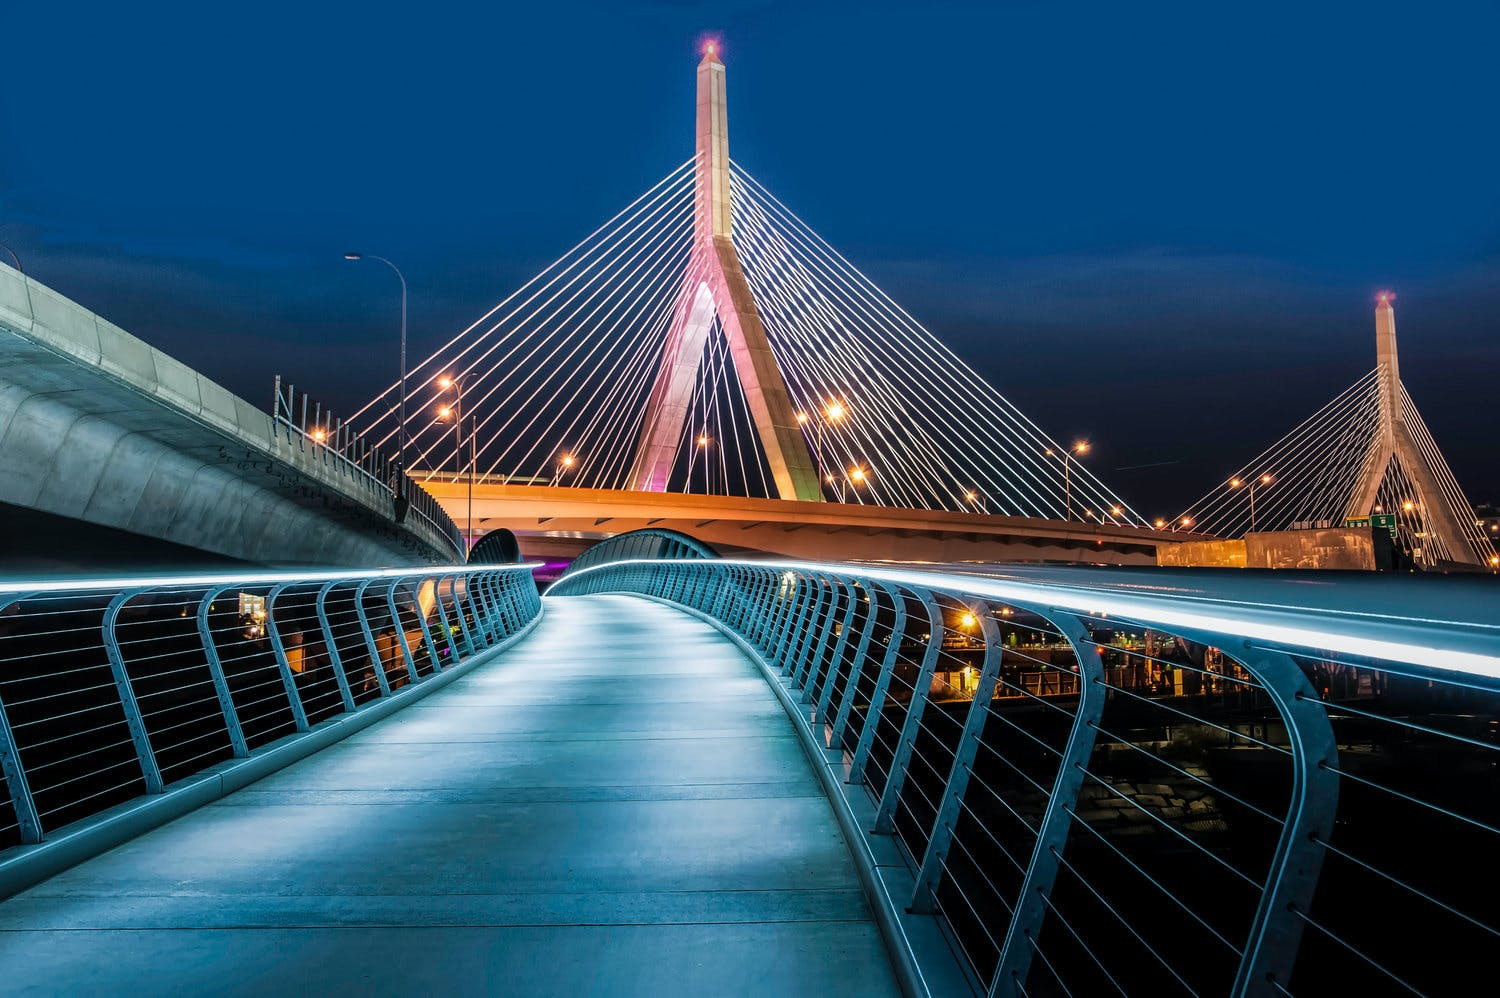 Boston TechCollective, remote and on-site IT consultation and tech support for the Greater Boston area